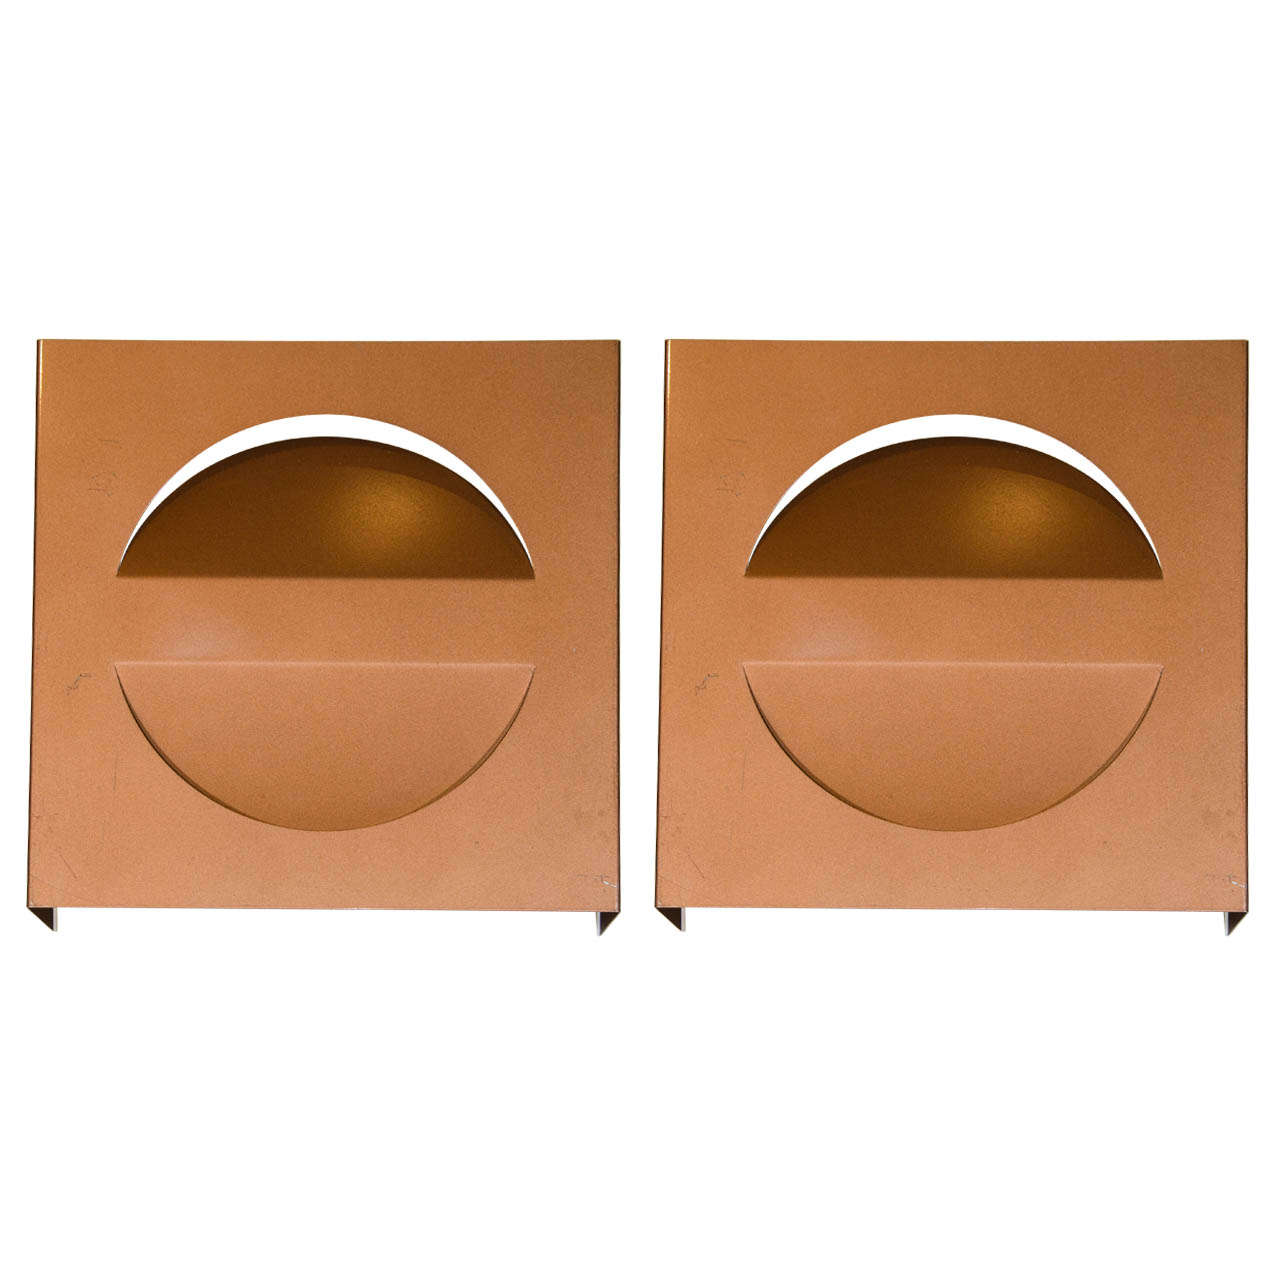 Pair of Ultra-Modern Lacquered Metal Sconces Designed by ... on Ultra Modern Wall Sconces id=64697